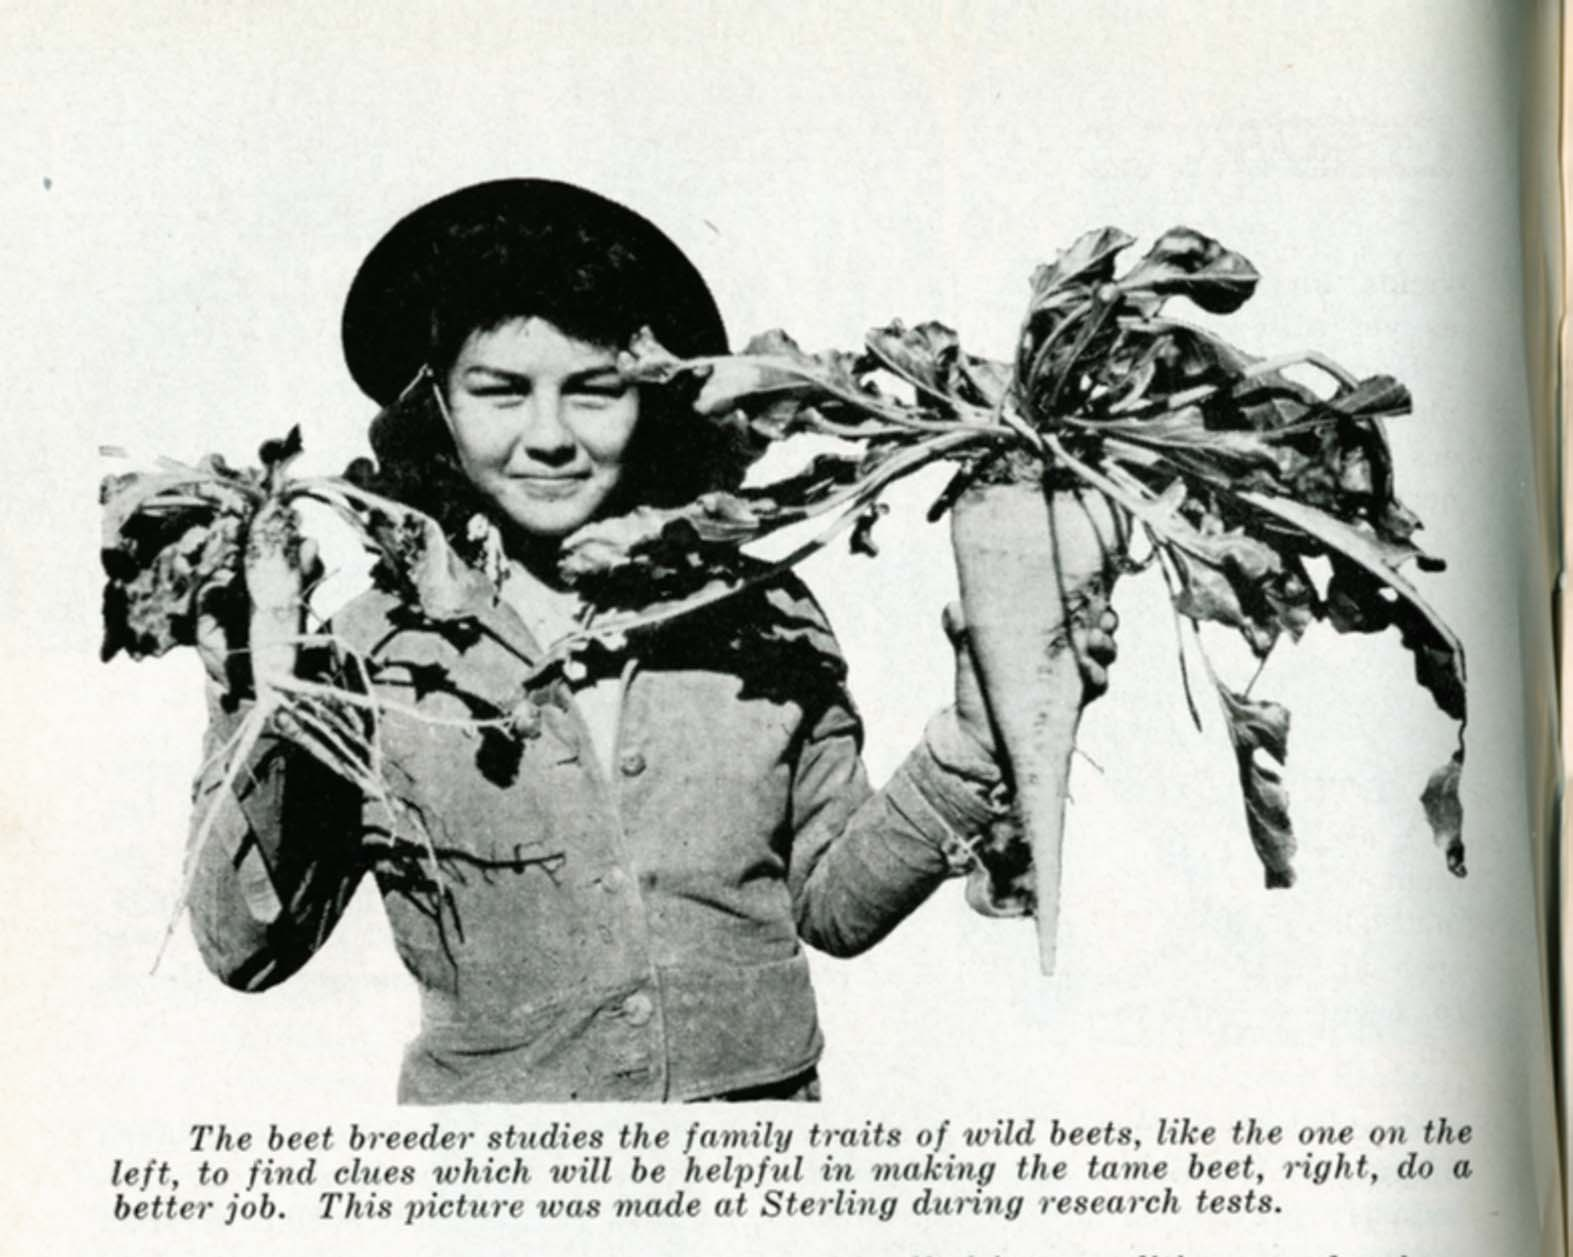 Young woman holding wild beet and